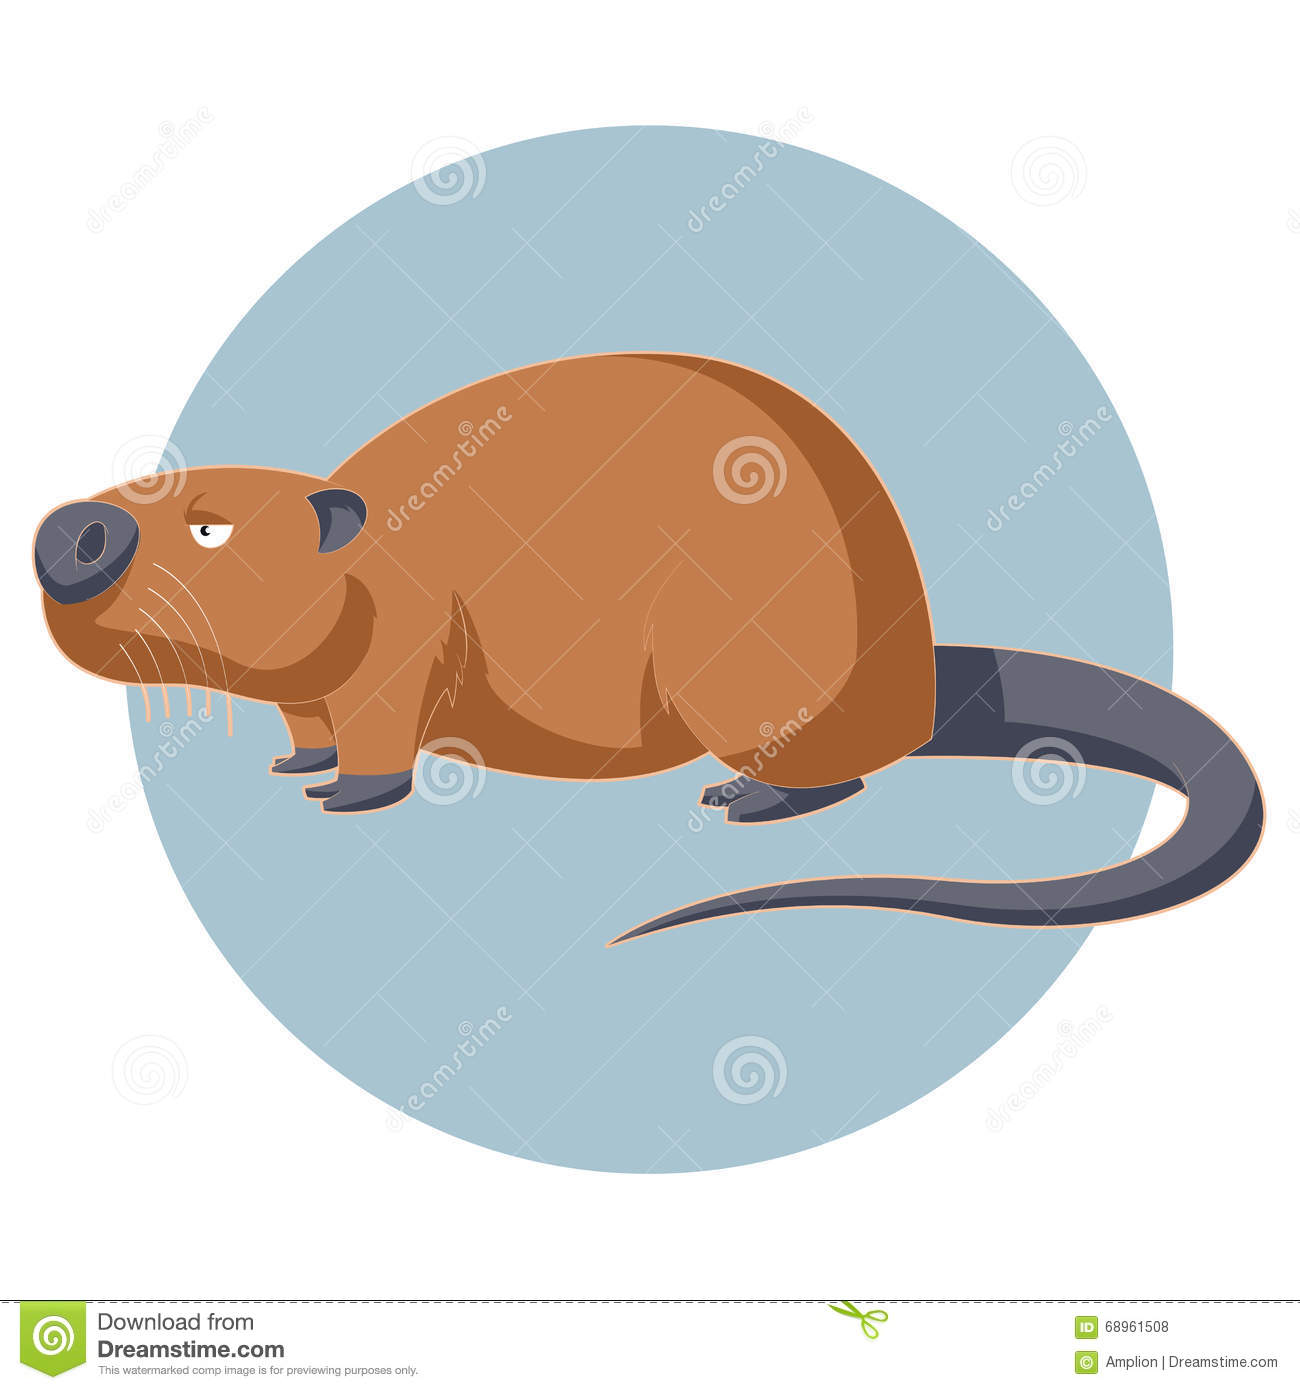 Nutria clipart #11, Download drawings